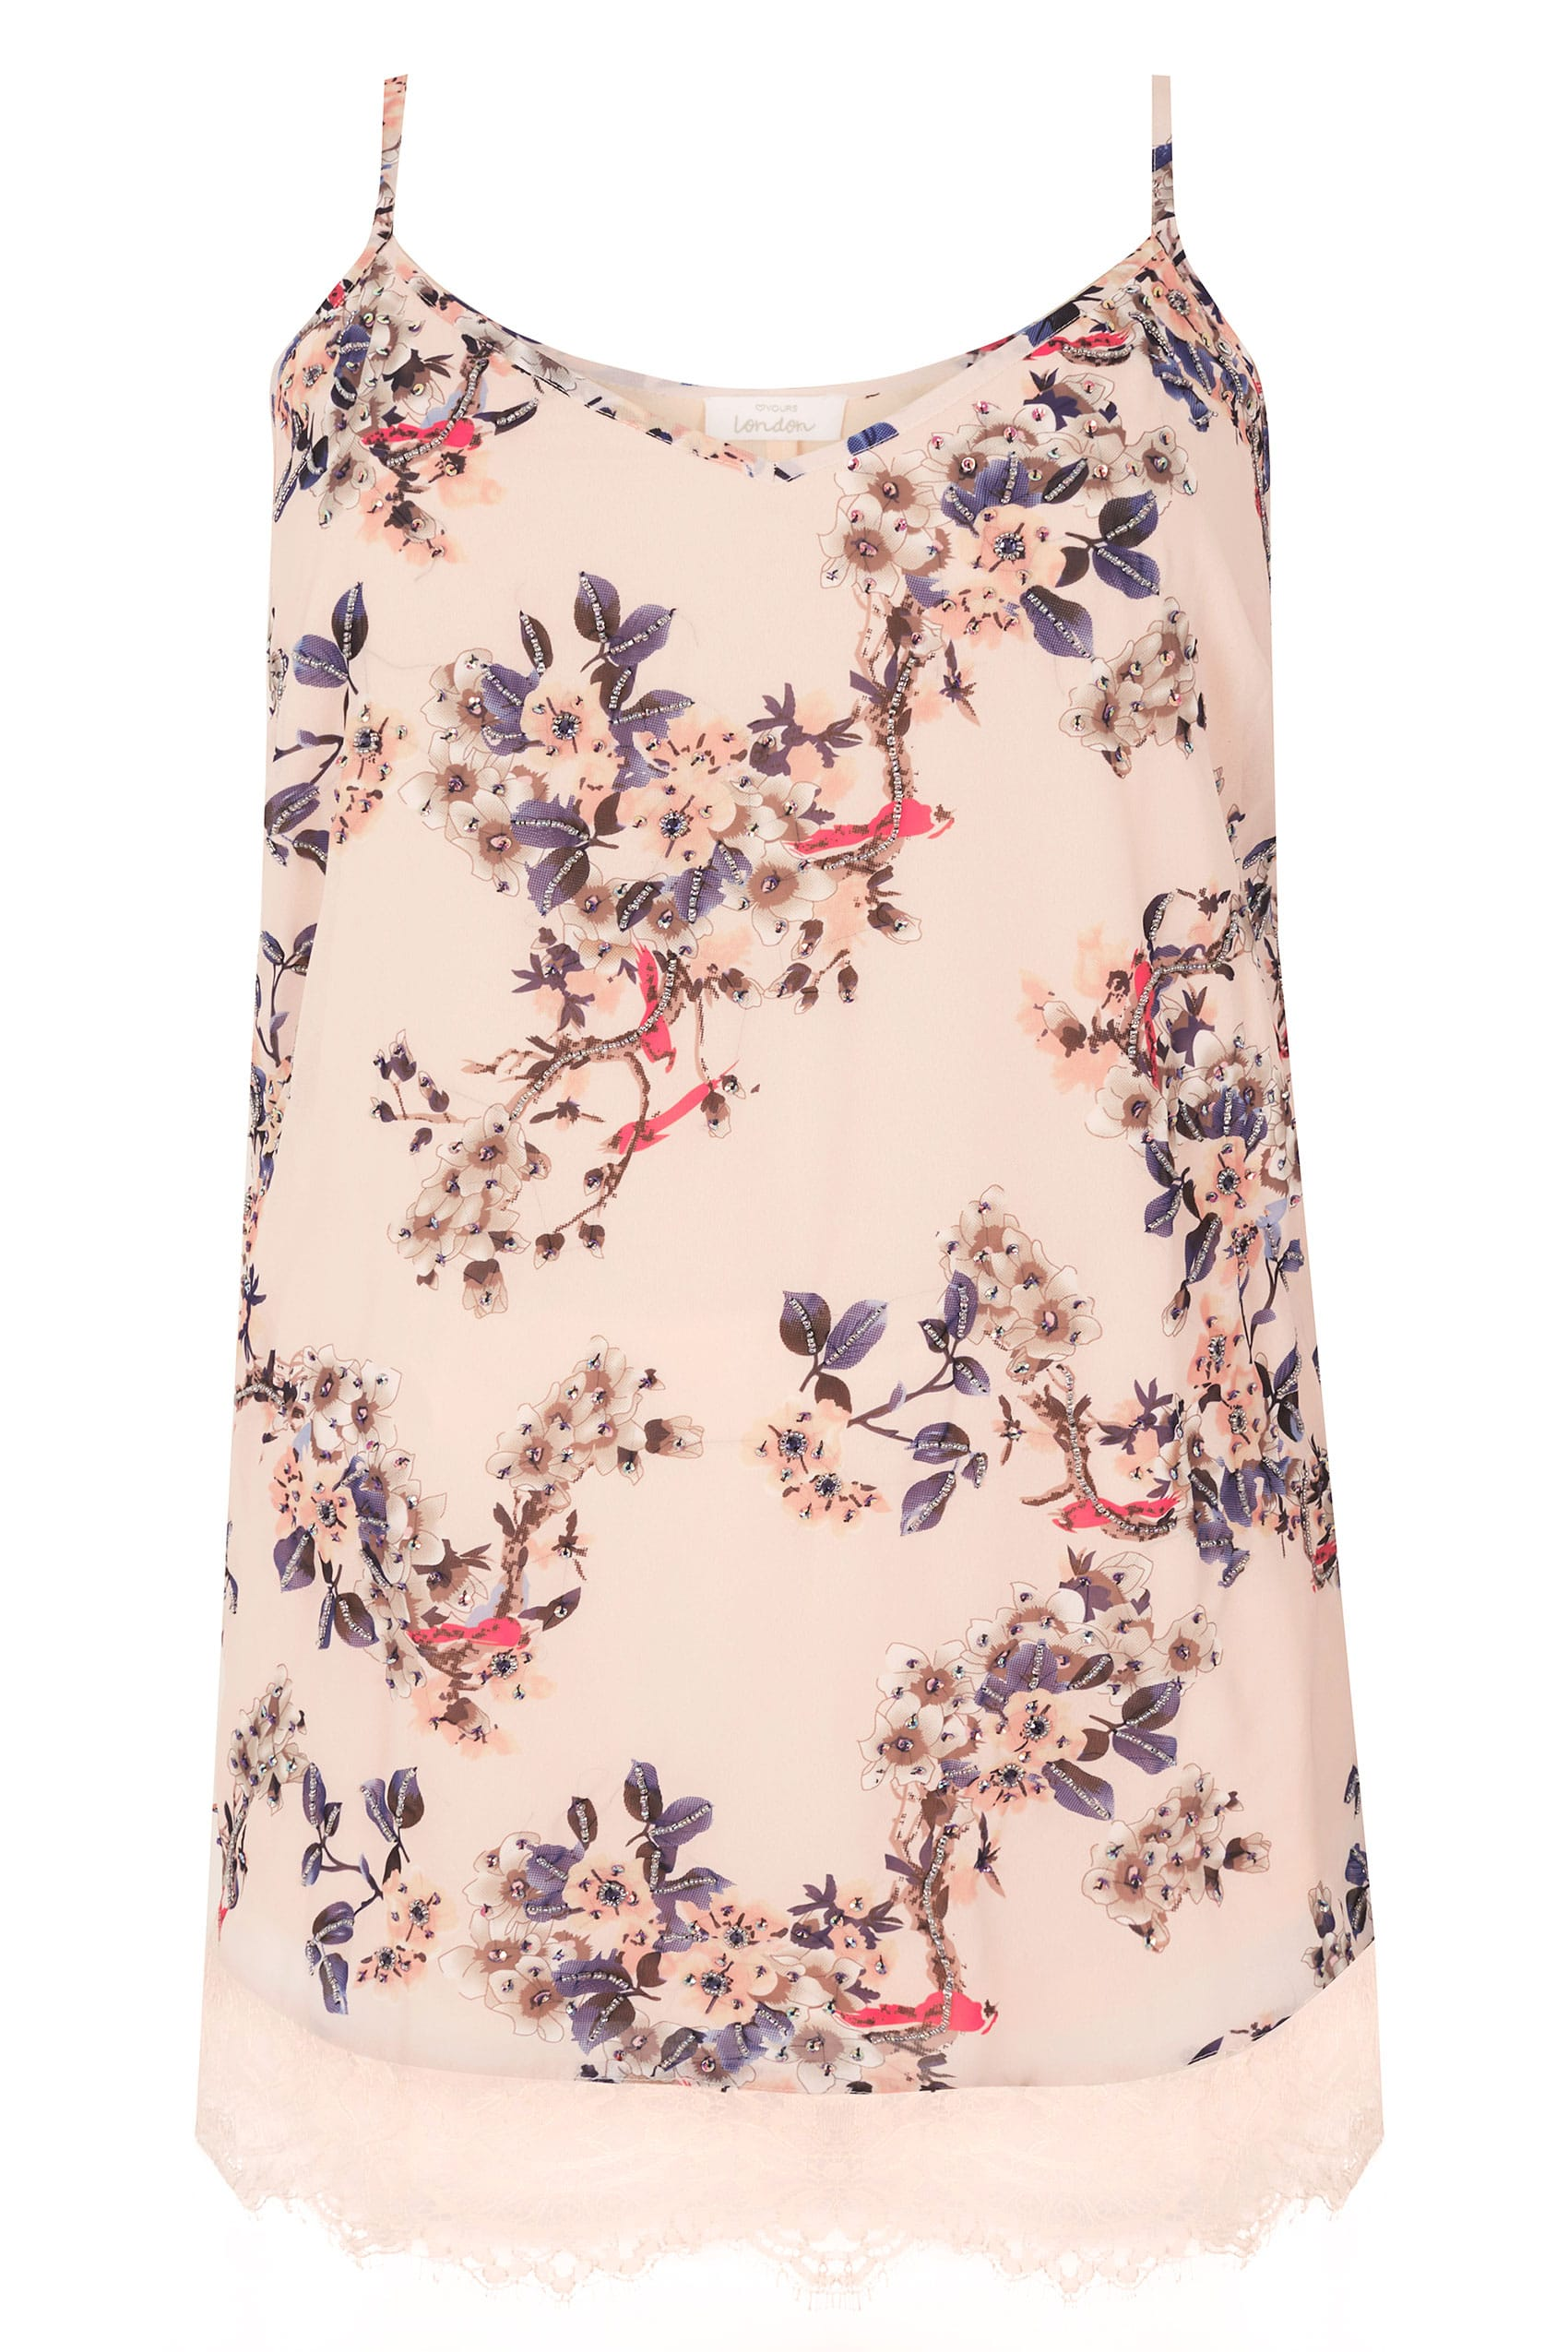 5e84bdbad0787 YOURS LONDON Pink Floral Embellished Cami Top